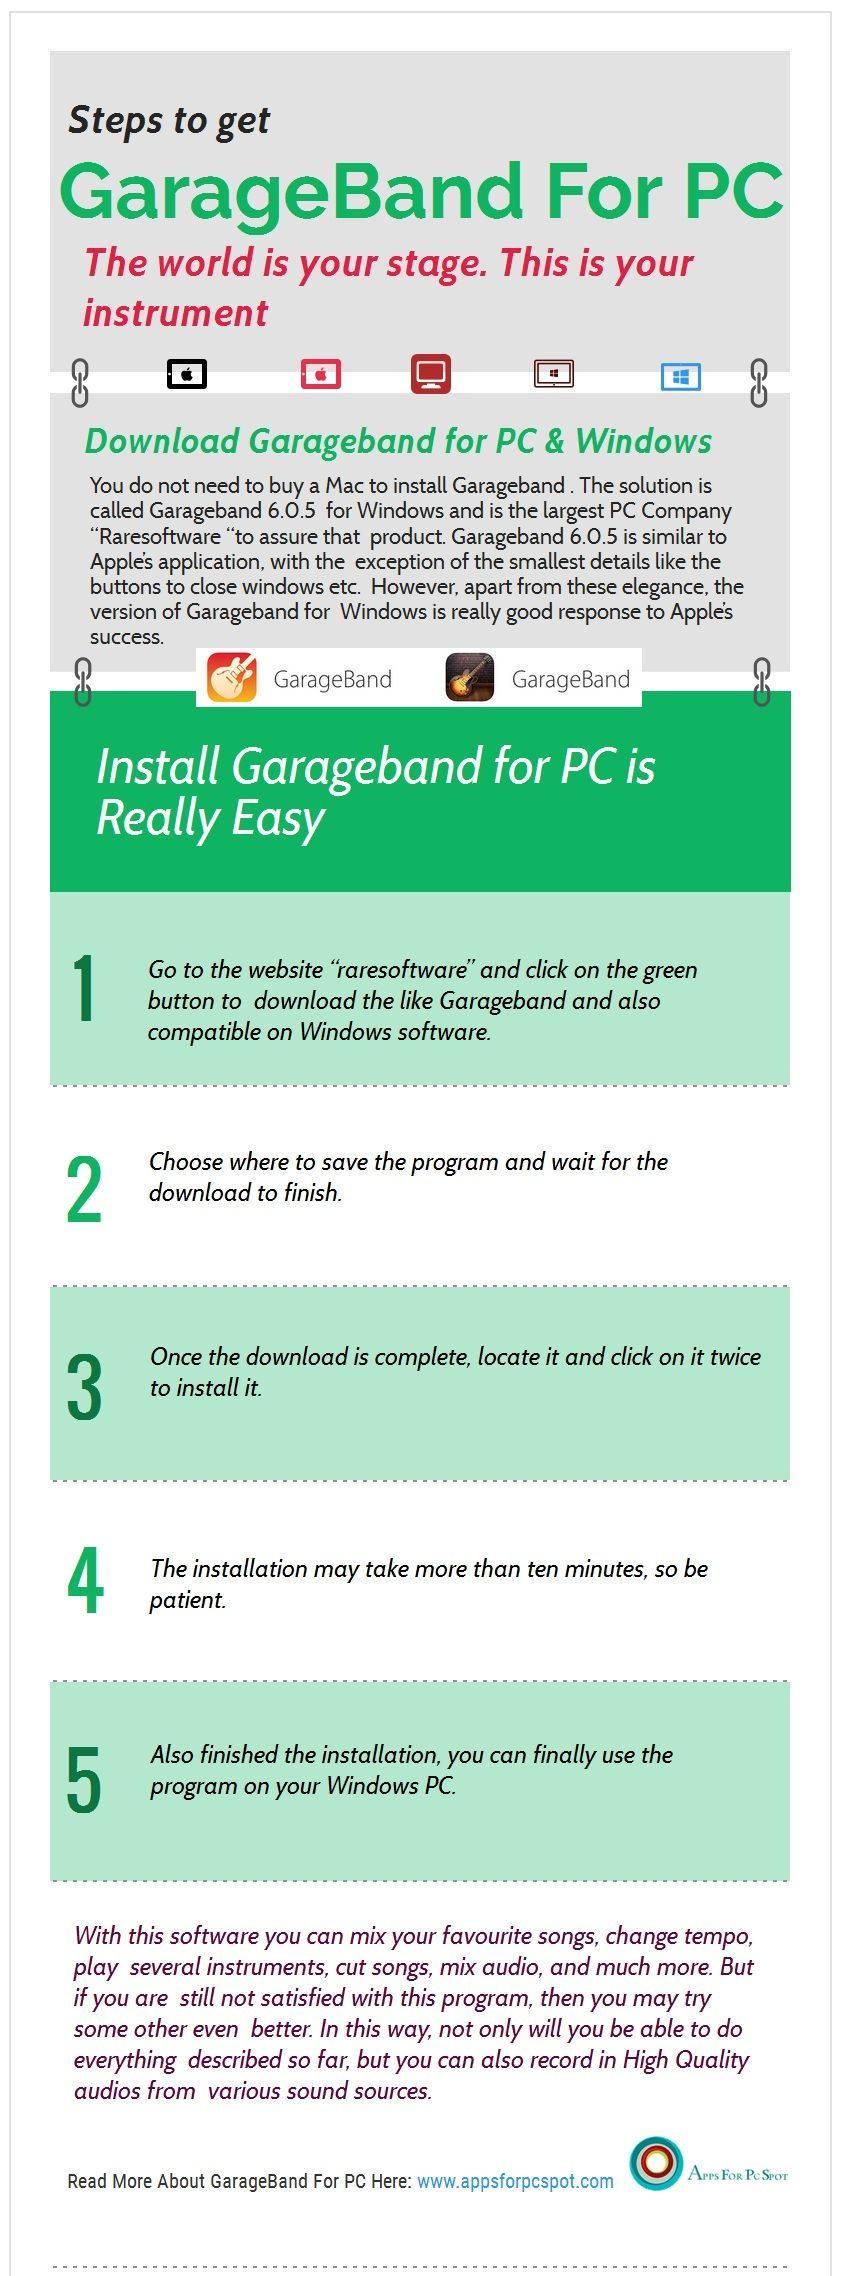 Download GarageBand for PC – Windows 7, 8 1, 10 | Apps & Games for